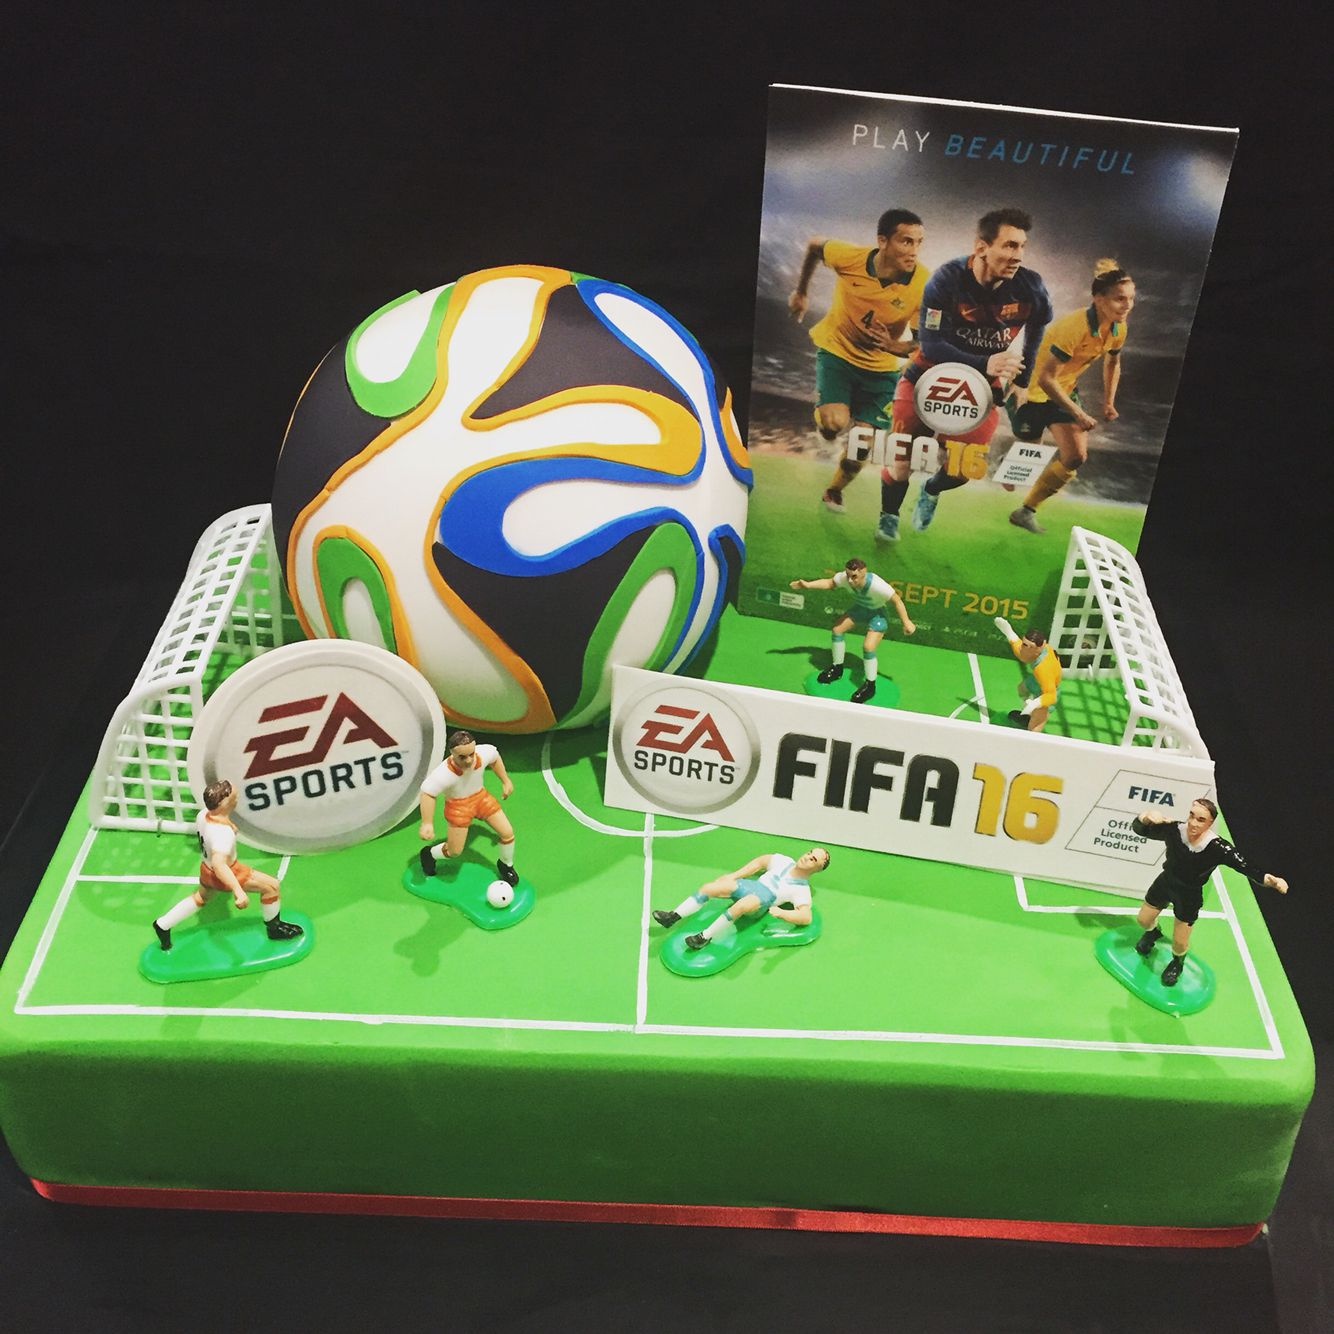 FIFA  Themed Cake With A D Soccer Ball Cake On Top - Cake birthday games